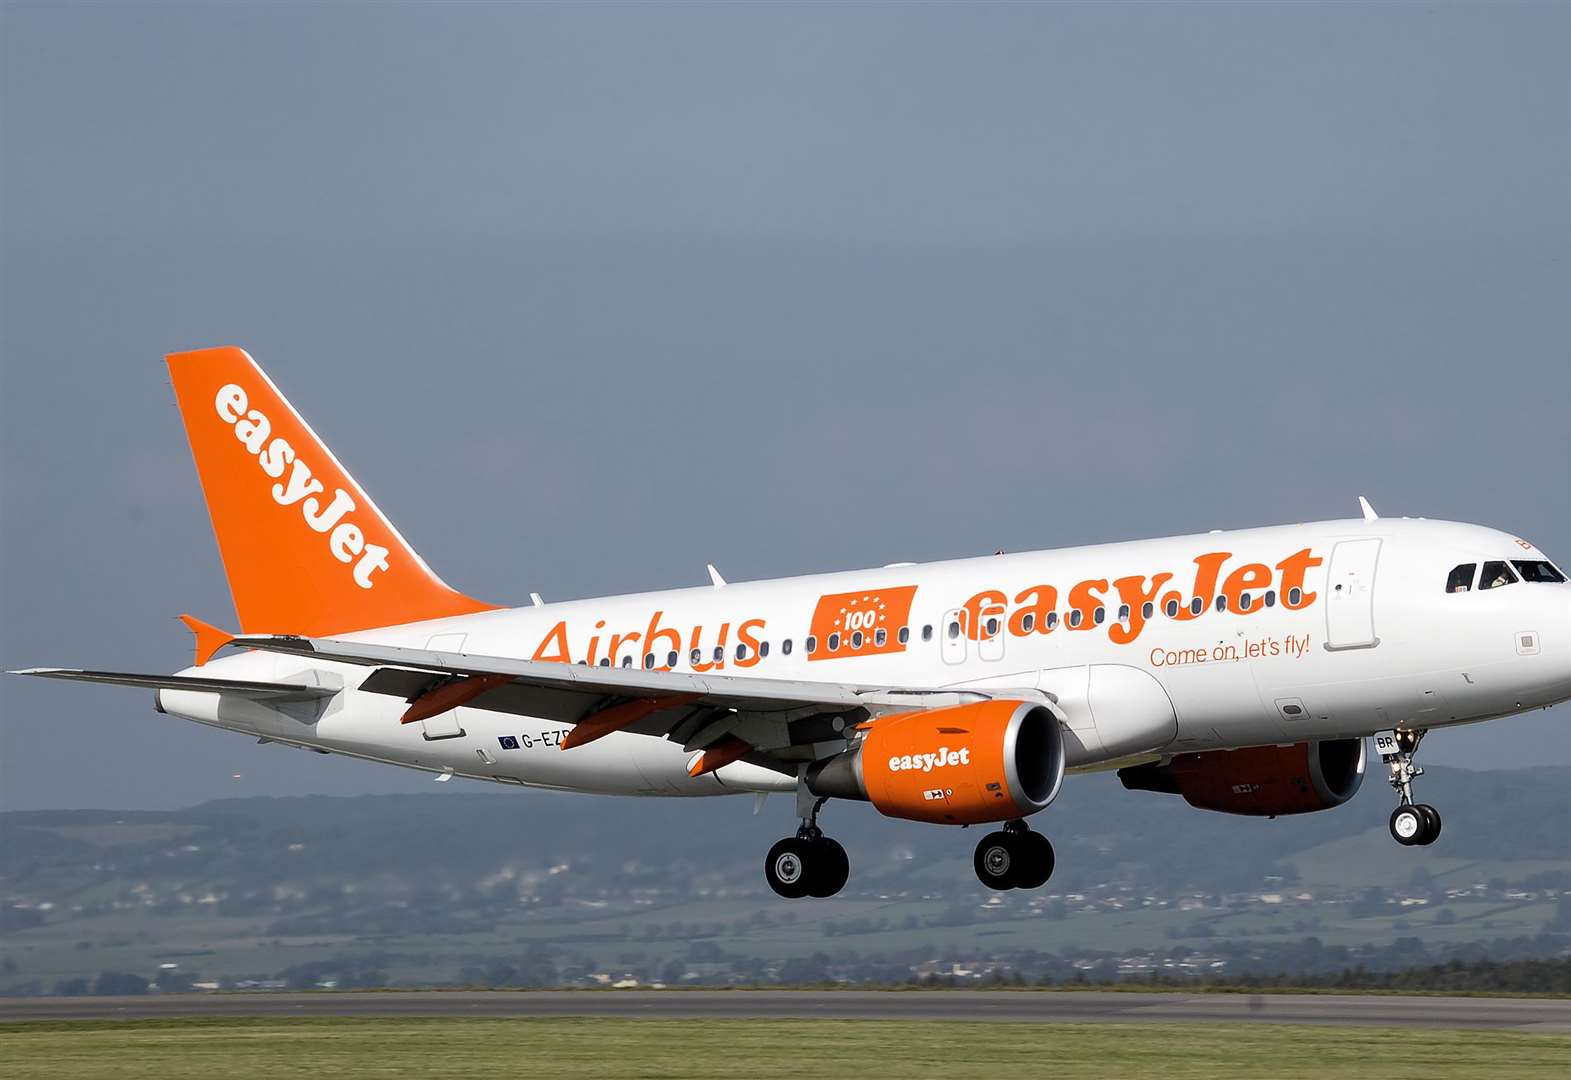 Relief for Stansted Airport easyJet passengers as check-in staff call off strikes